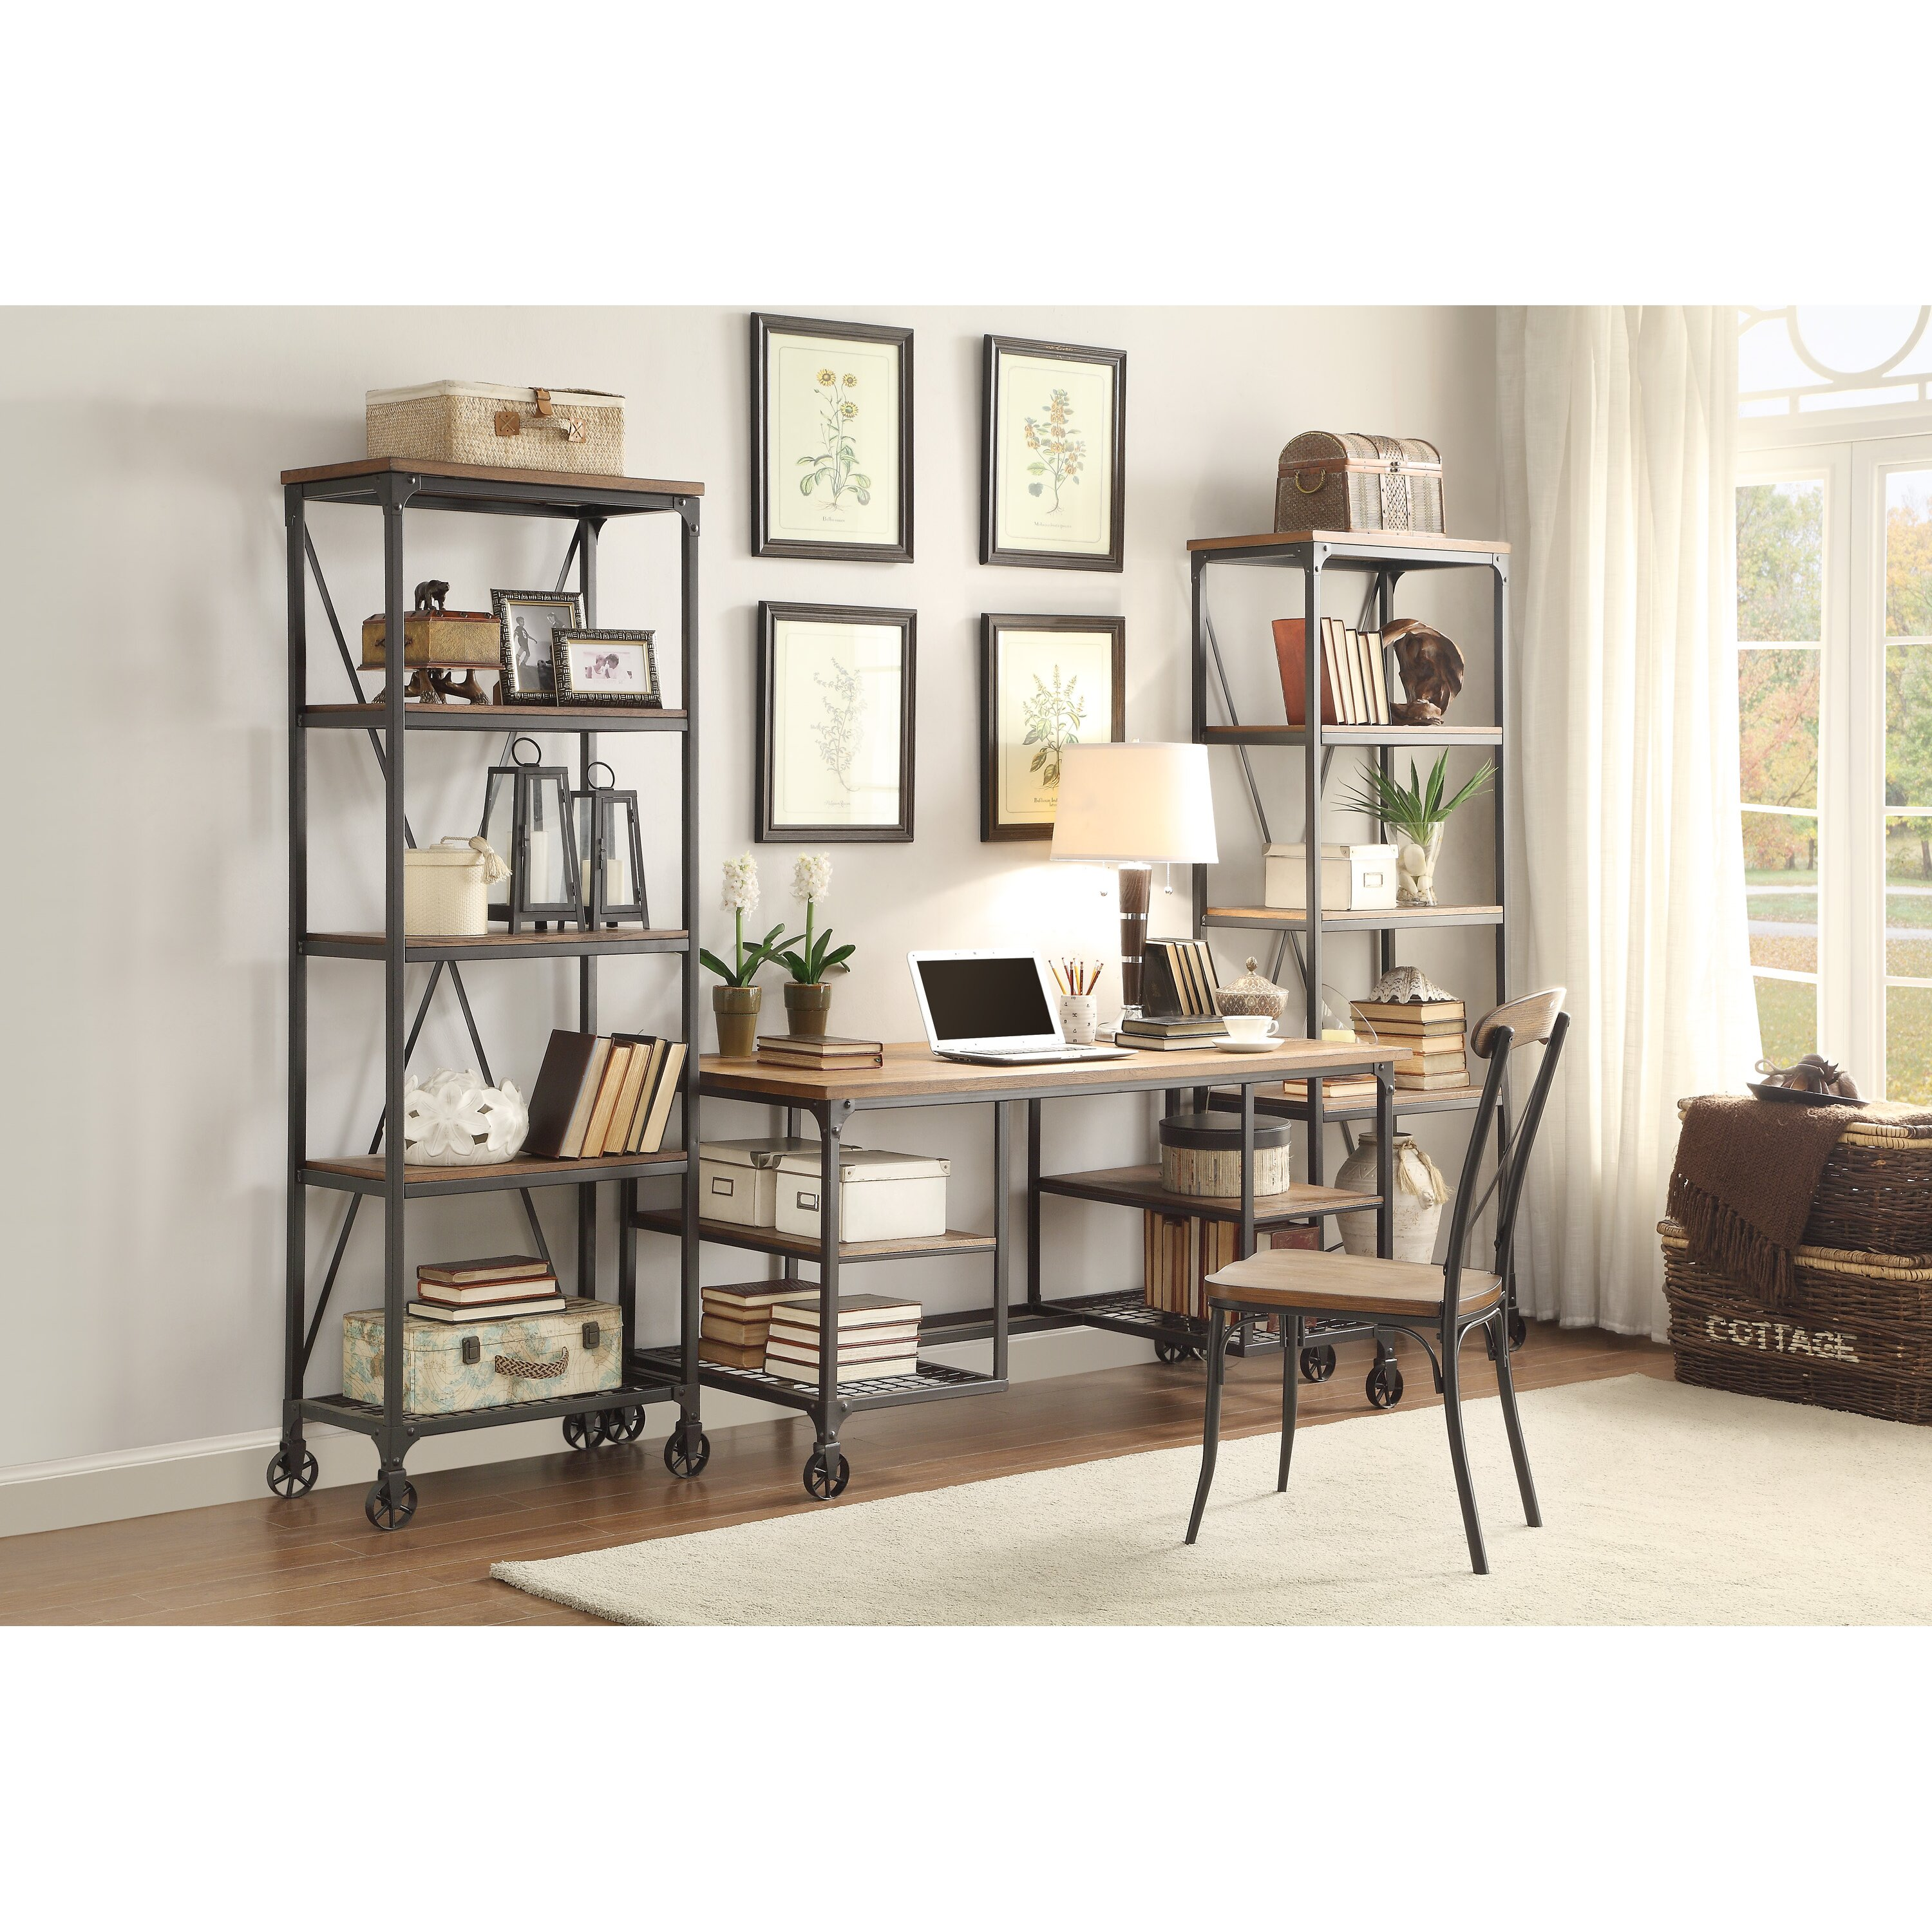 trent austin design rocklin etagere bookcase reviews wayfair. Black Bedroom Furniture Sets. Home Design Ideas